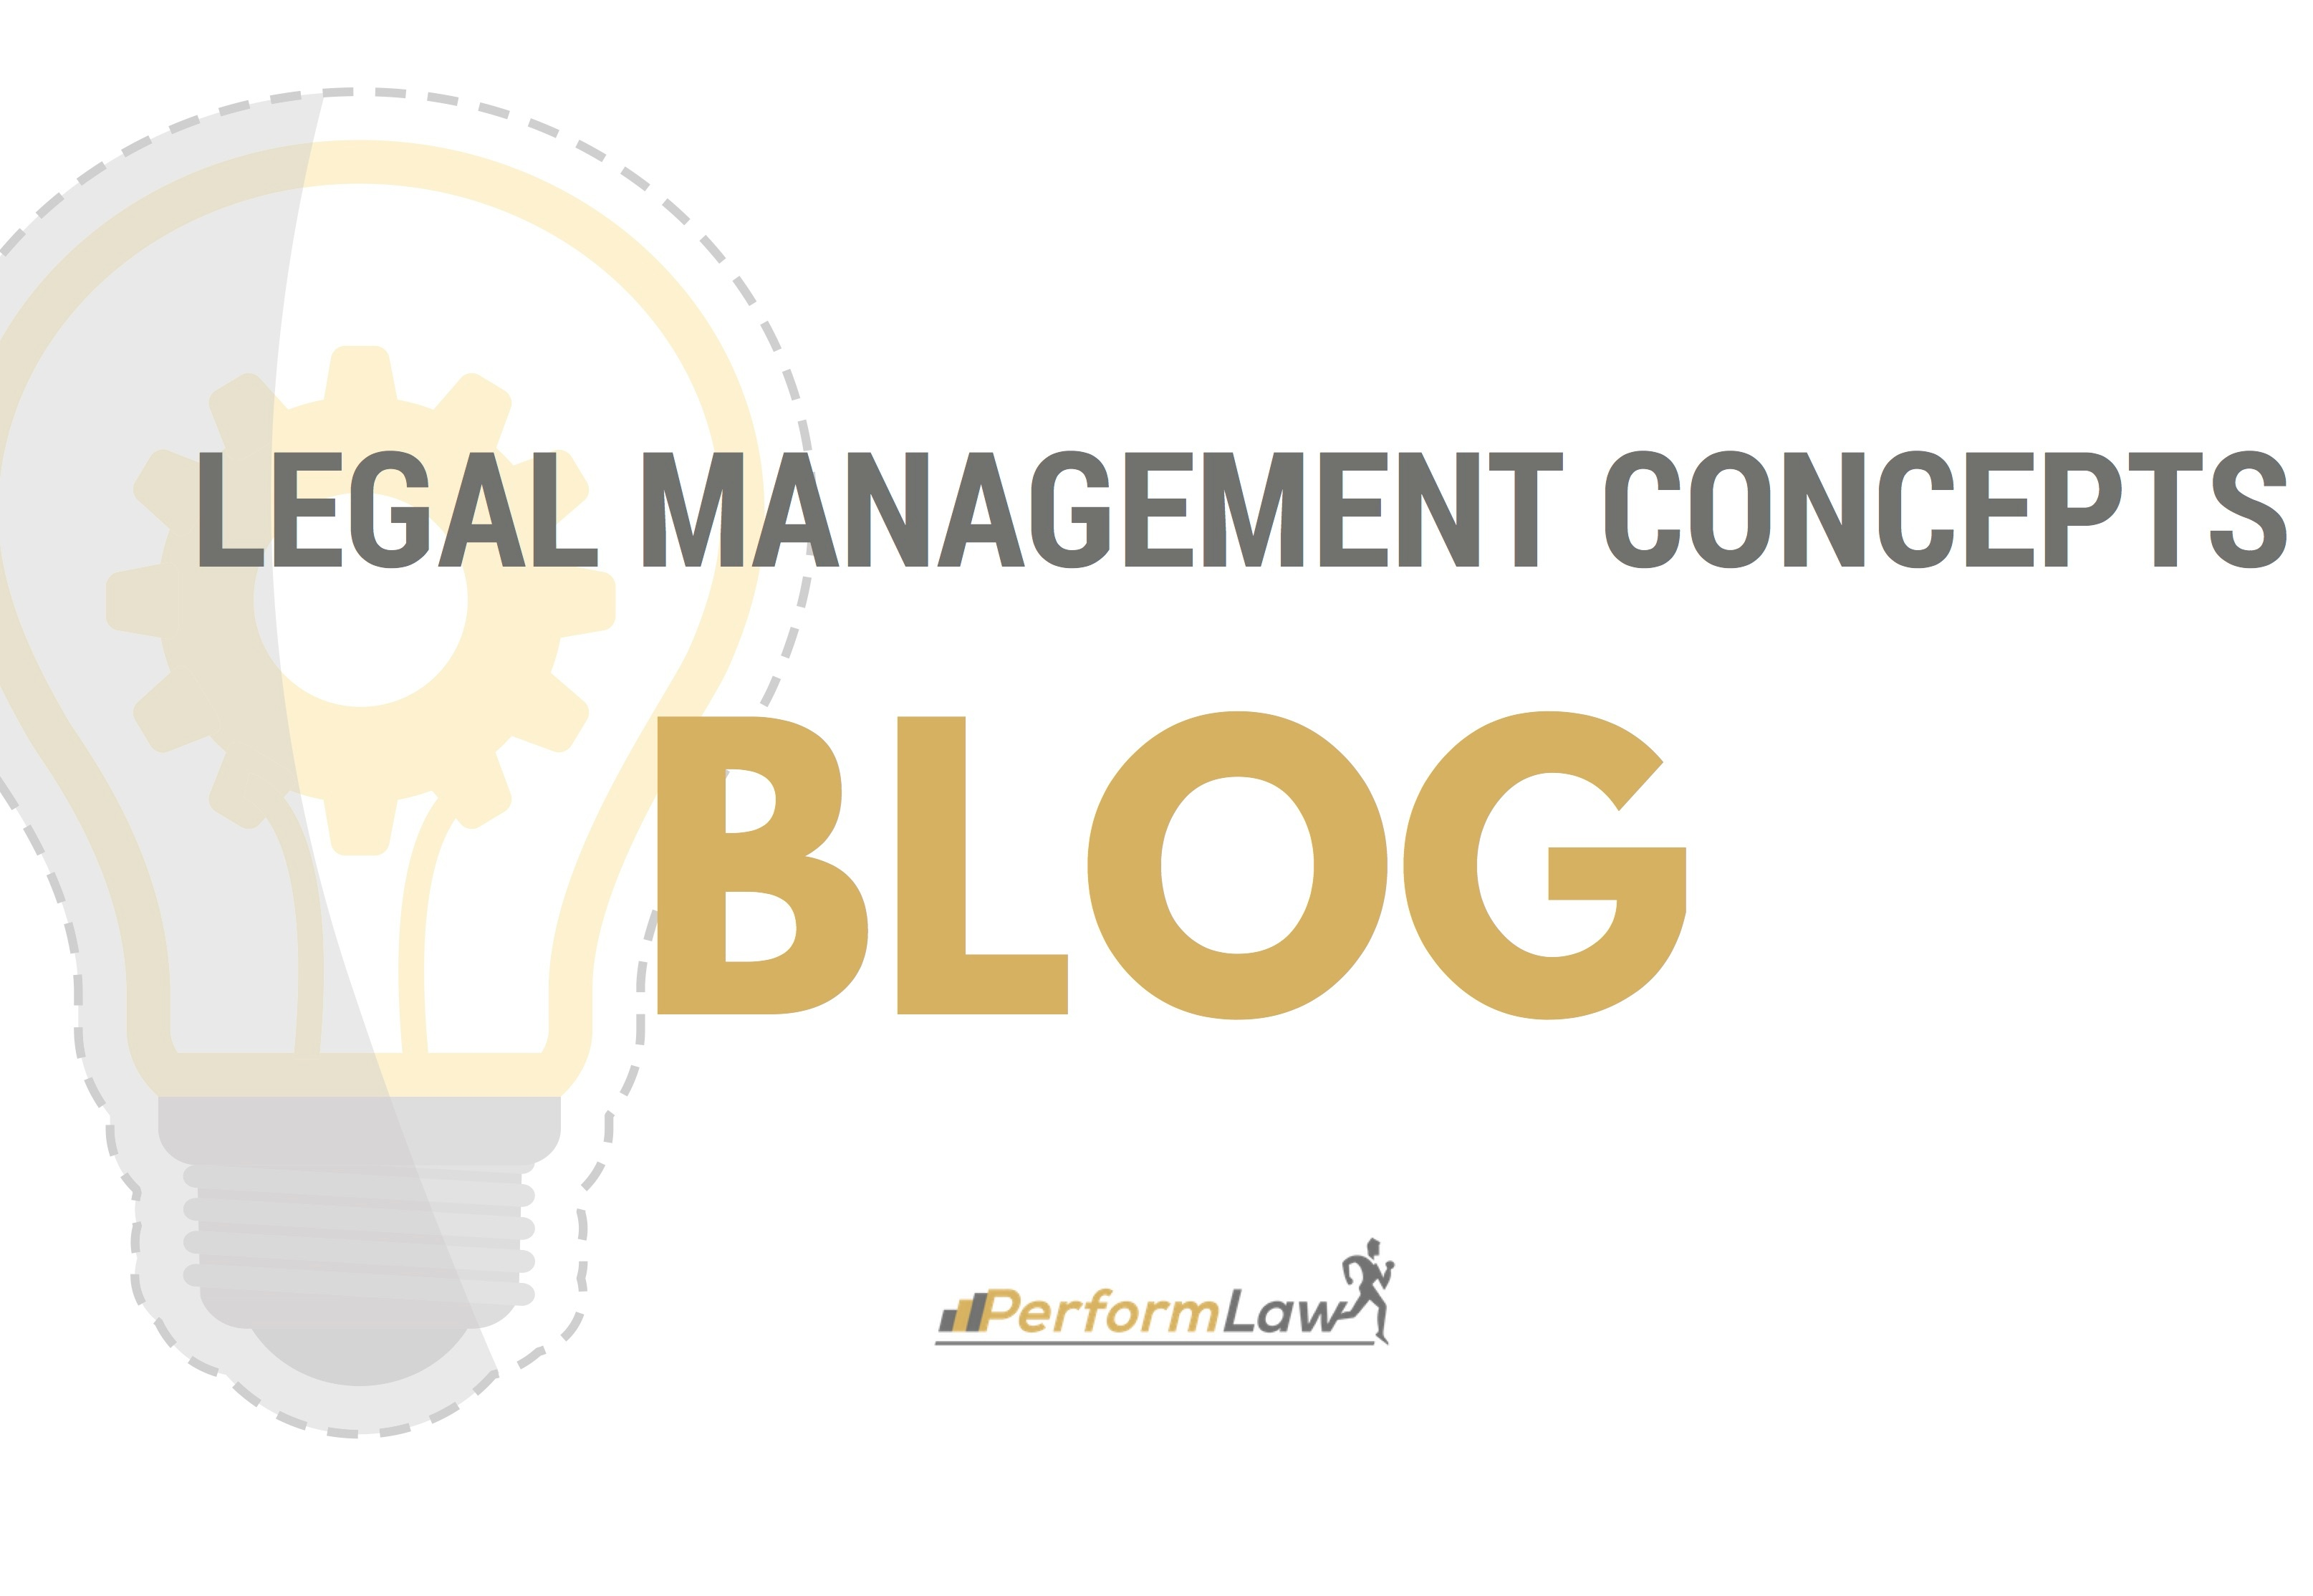 law firm management concepts blog discusses relevant law firm topics